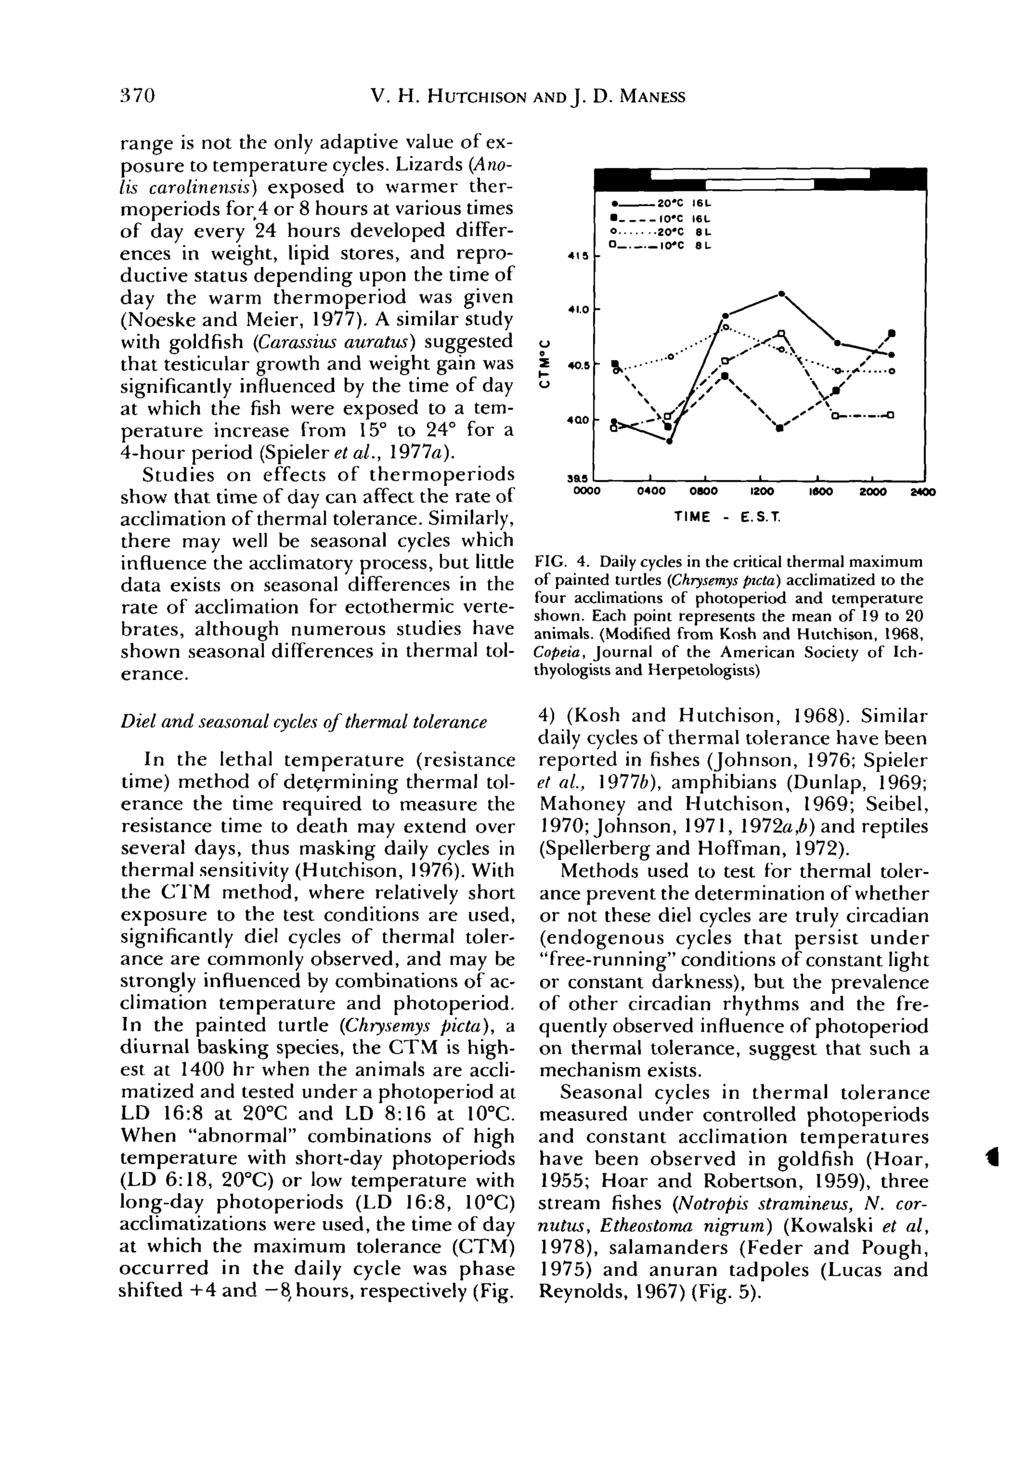 370 V. H. HUTCHISON AND J. D. MANESS range is not the only adaptive value of exposure to temperature cycles.